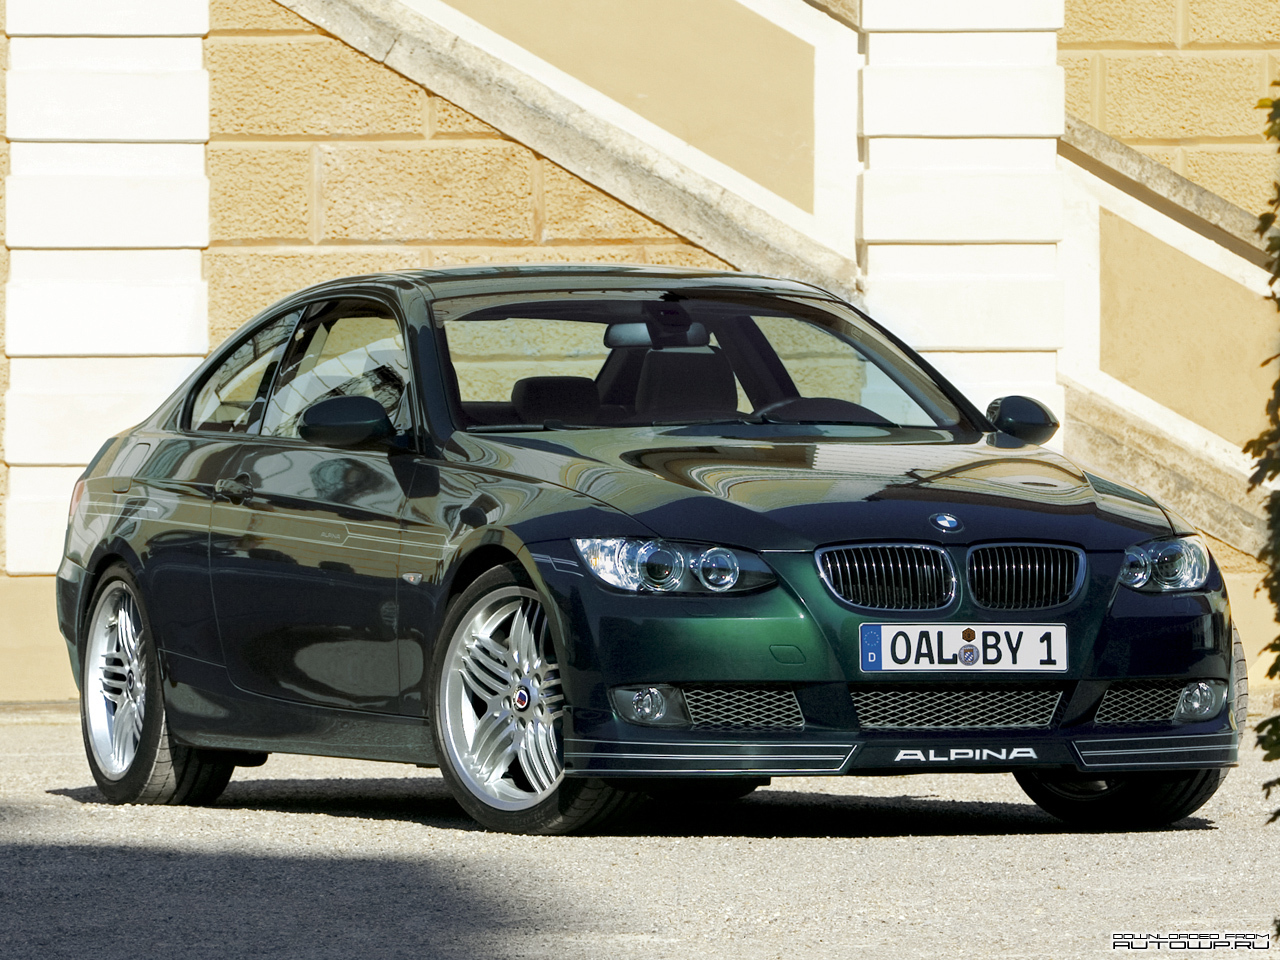 alpina b3 bi turbo coupe e92 photos photogallery with 7 pics cars pictures. Black Bedroom Furniture Sets. Home Design Ideas